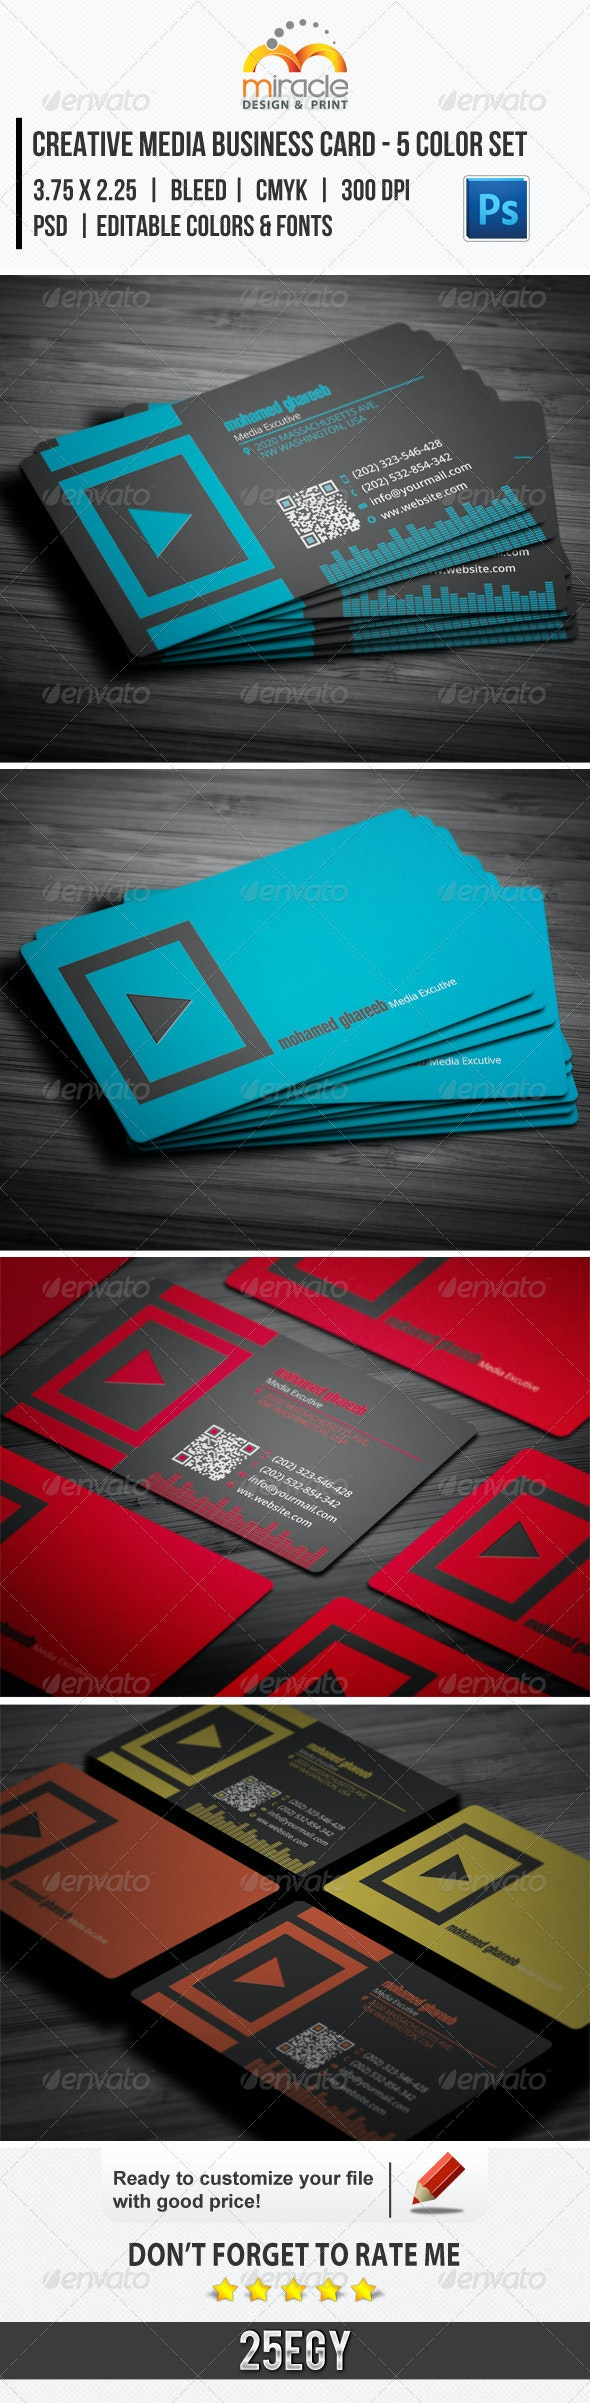 Creative Media Business Card - 5 Color Set - Creative Business Cards